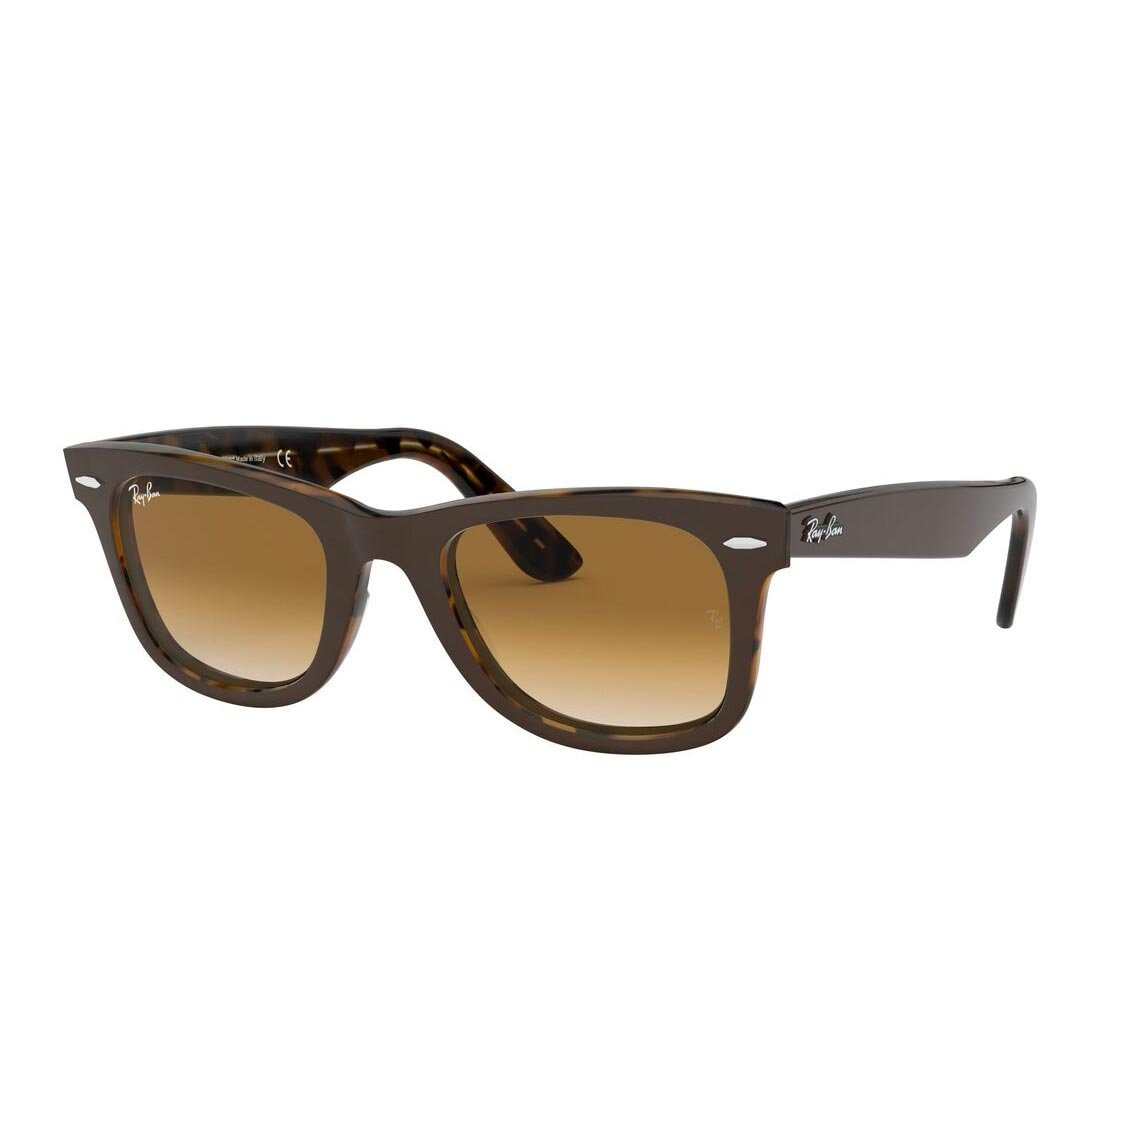 Ray-Ban Original Wayfarer Color Mix RB2140 127651 5022